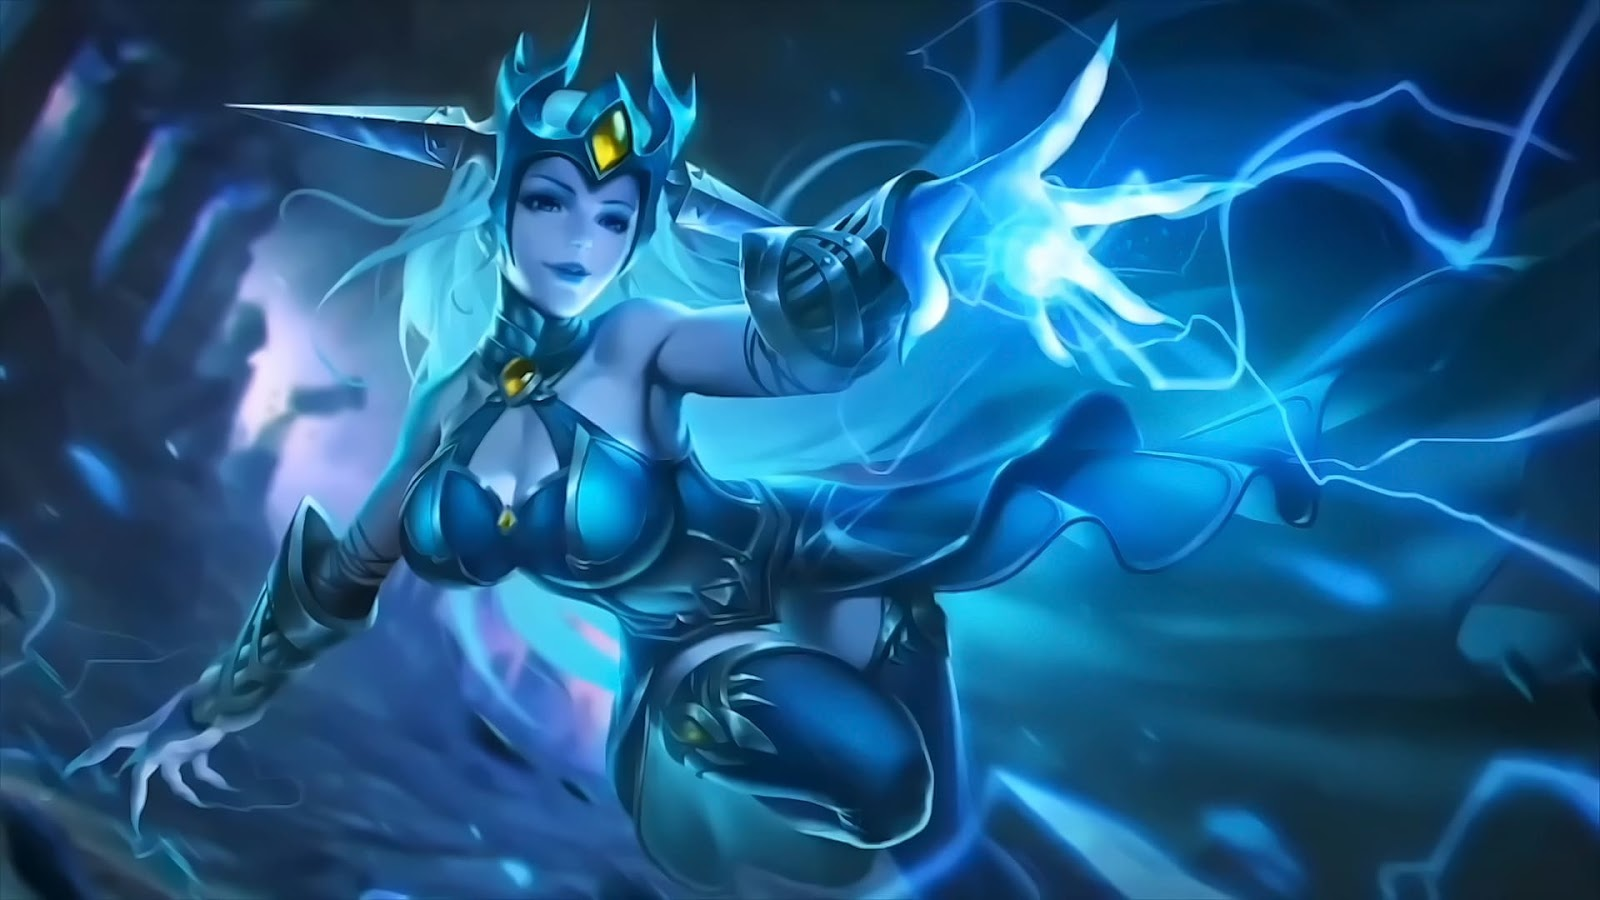 Wallpaper Eudora Lightning Sorceress Old Skins Mobile Legends HD for PC